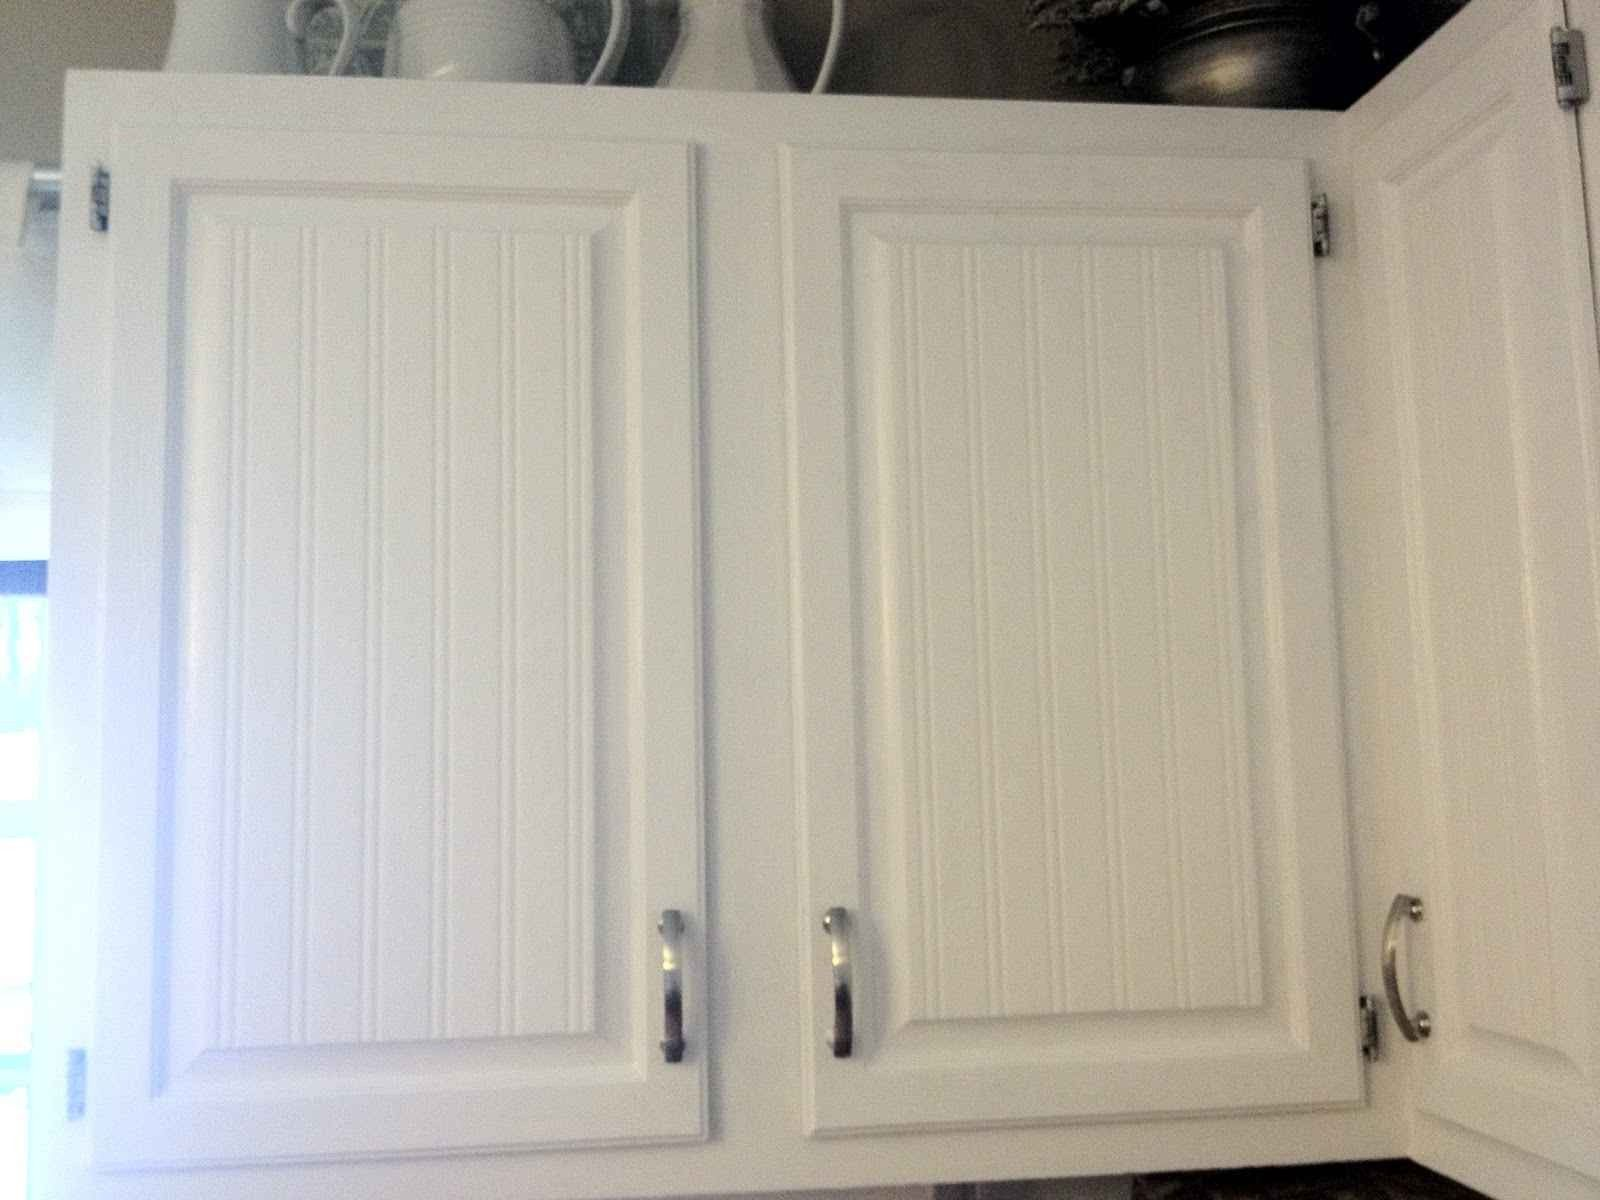 20 White Beadboard Cabinet Doors Apartment Kitchen Cabinet Ideas Check More At Http Beadboard Kitchen Cabinets Beadboard Kitchen Wallpaper Bathroom Cabinets